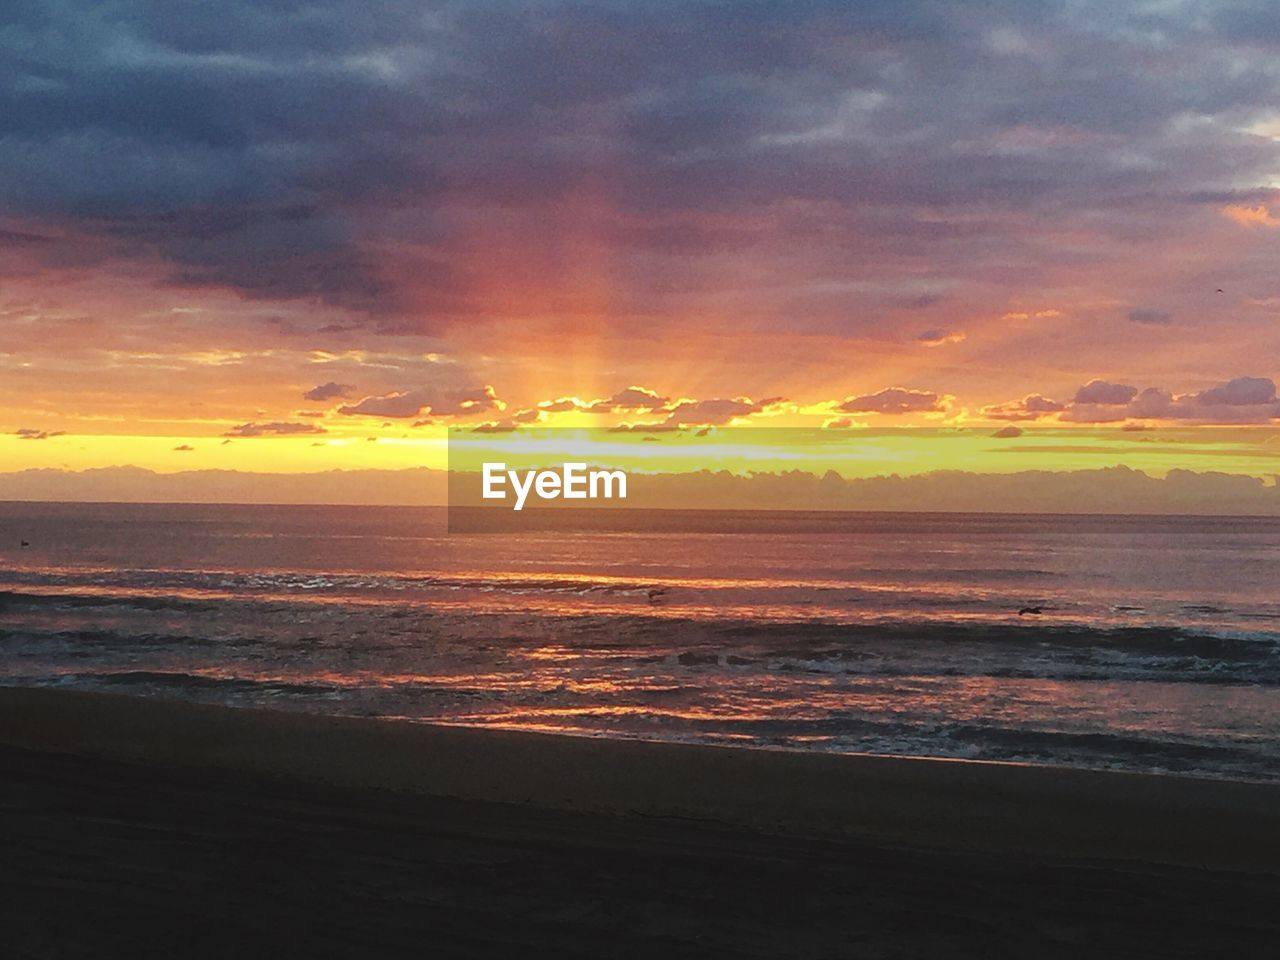 sunset, sea, scenics, beach, beauty in nature, nature, orange color, tranquil scene, sky, horizon over water, tranquility, water, cloud - sky, idyllic, no people, outdoors, wave, silhouette